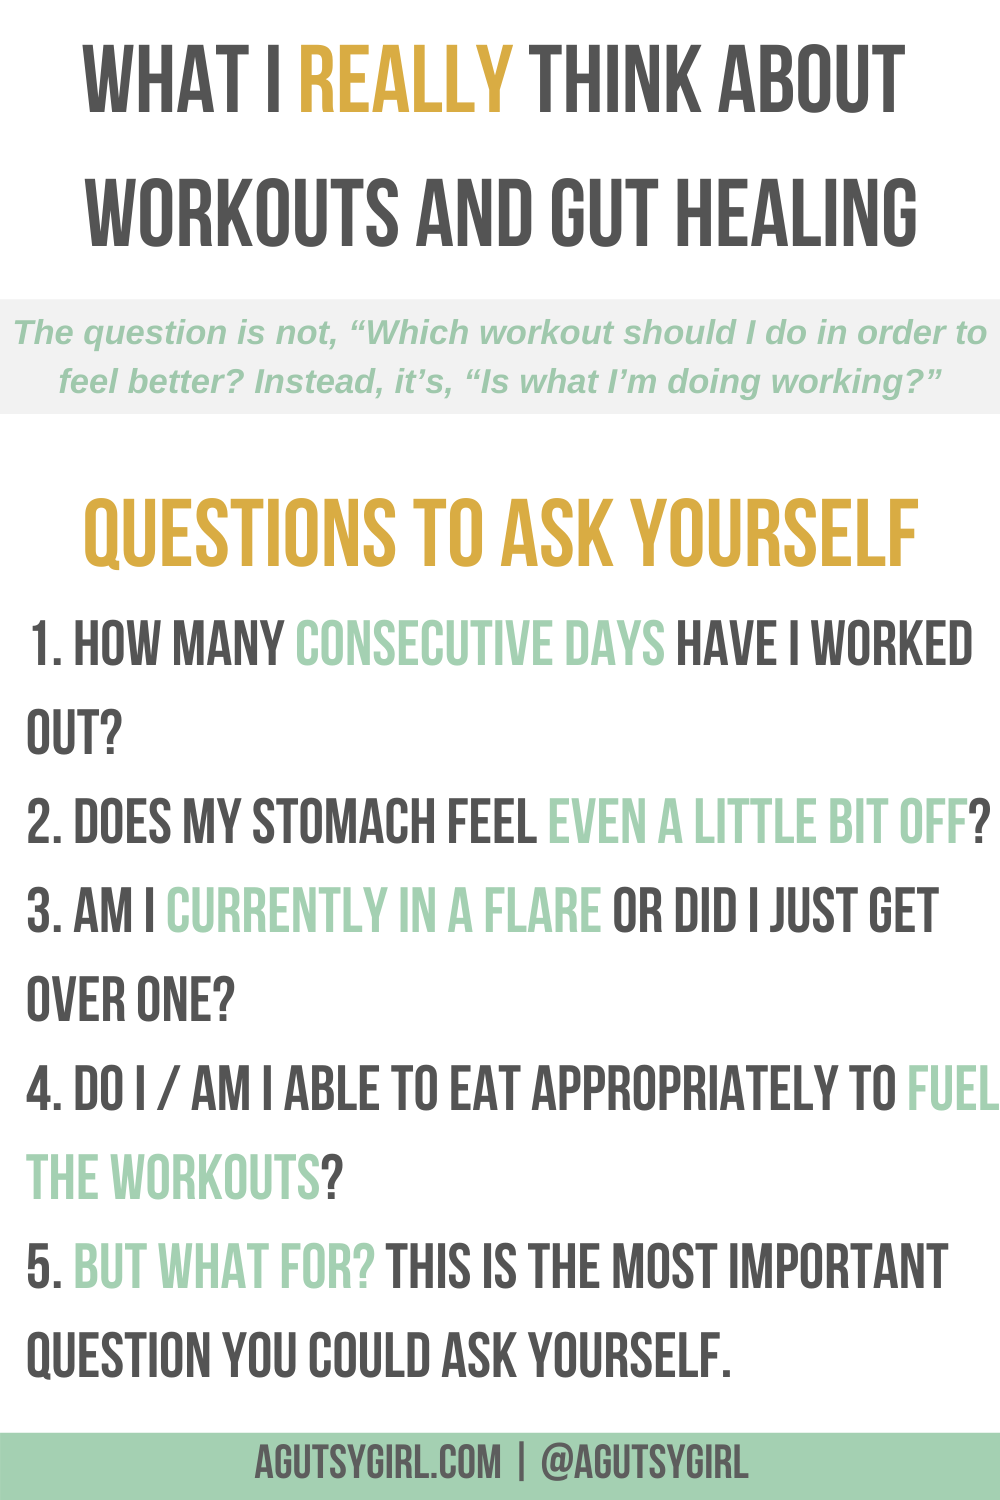 What I Really Think About Workouts and Gut Healing agutsygirl.com questions #agutsygirl #workouts #fitness #guthealth